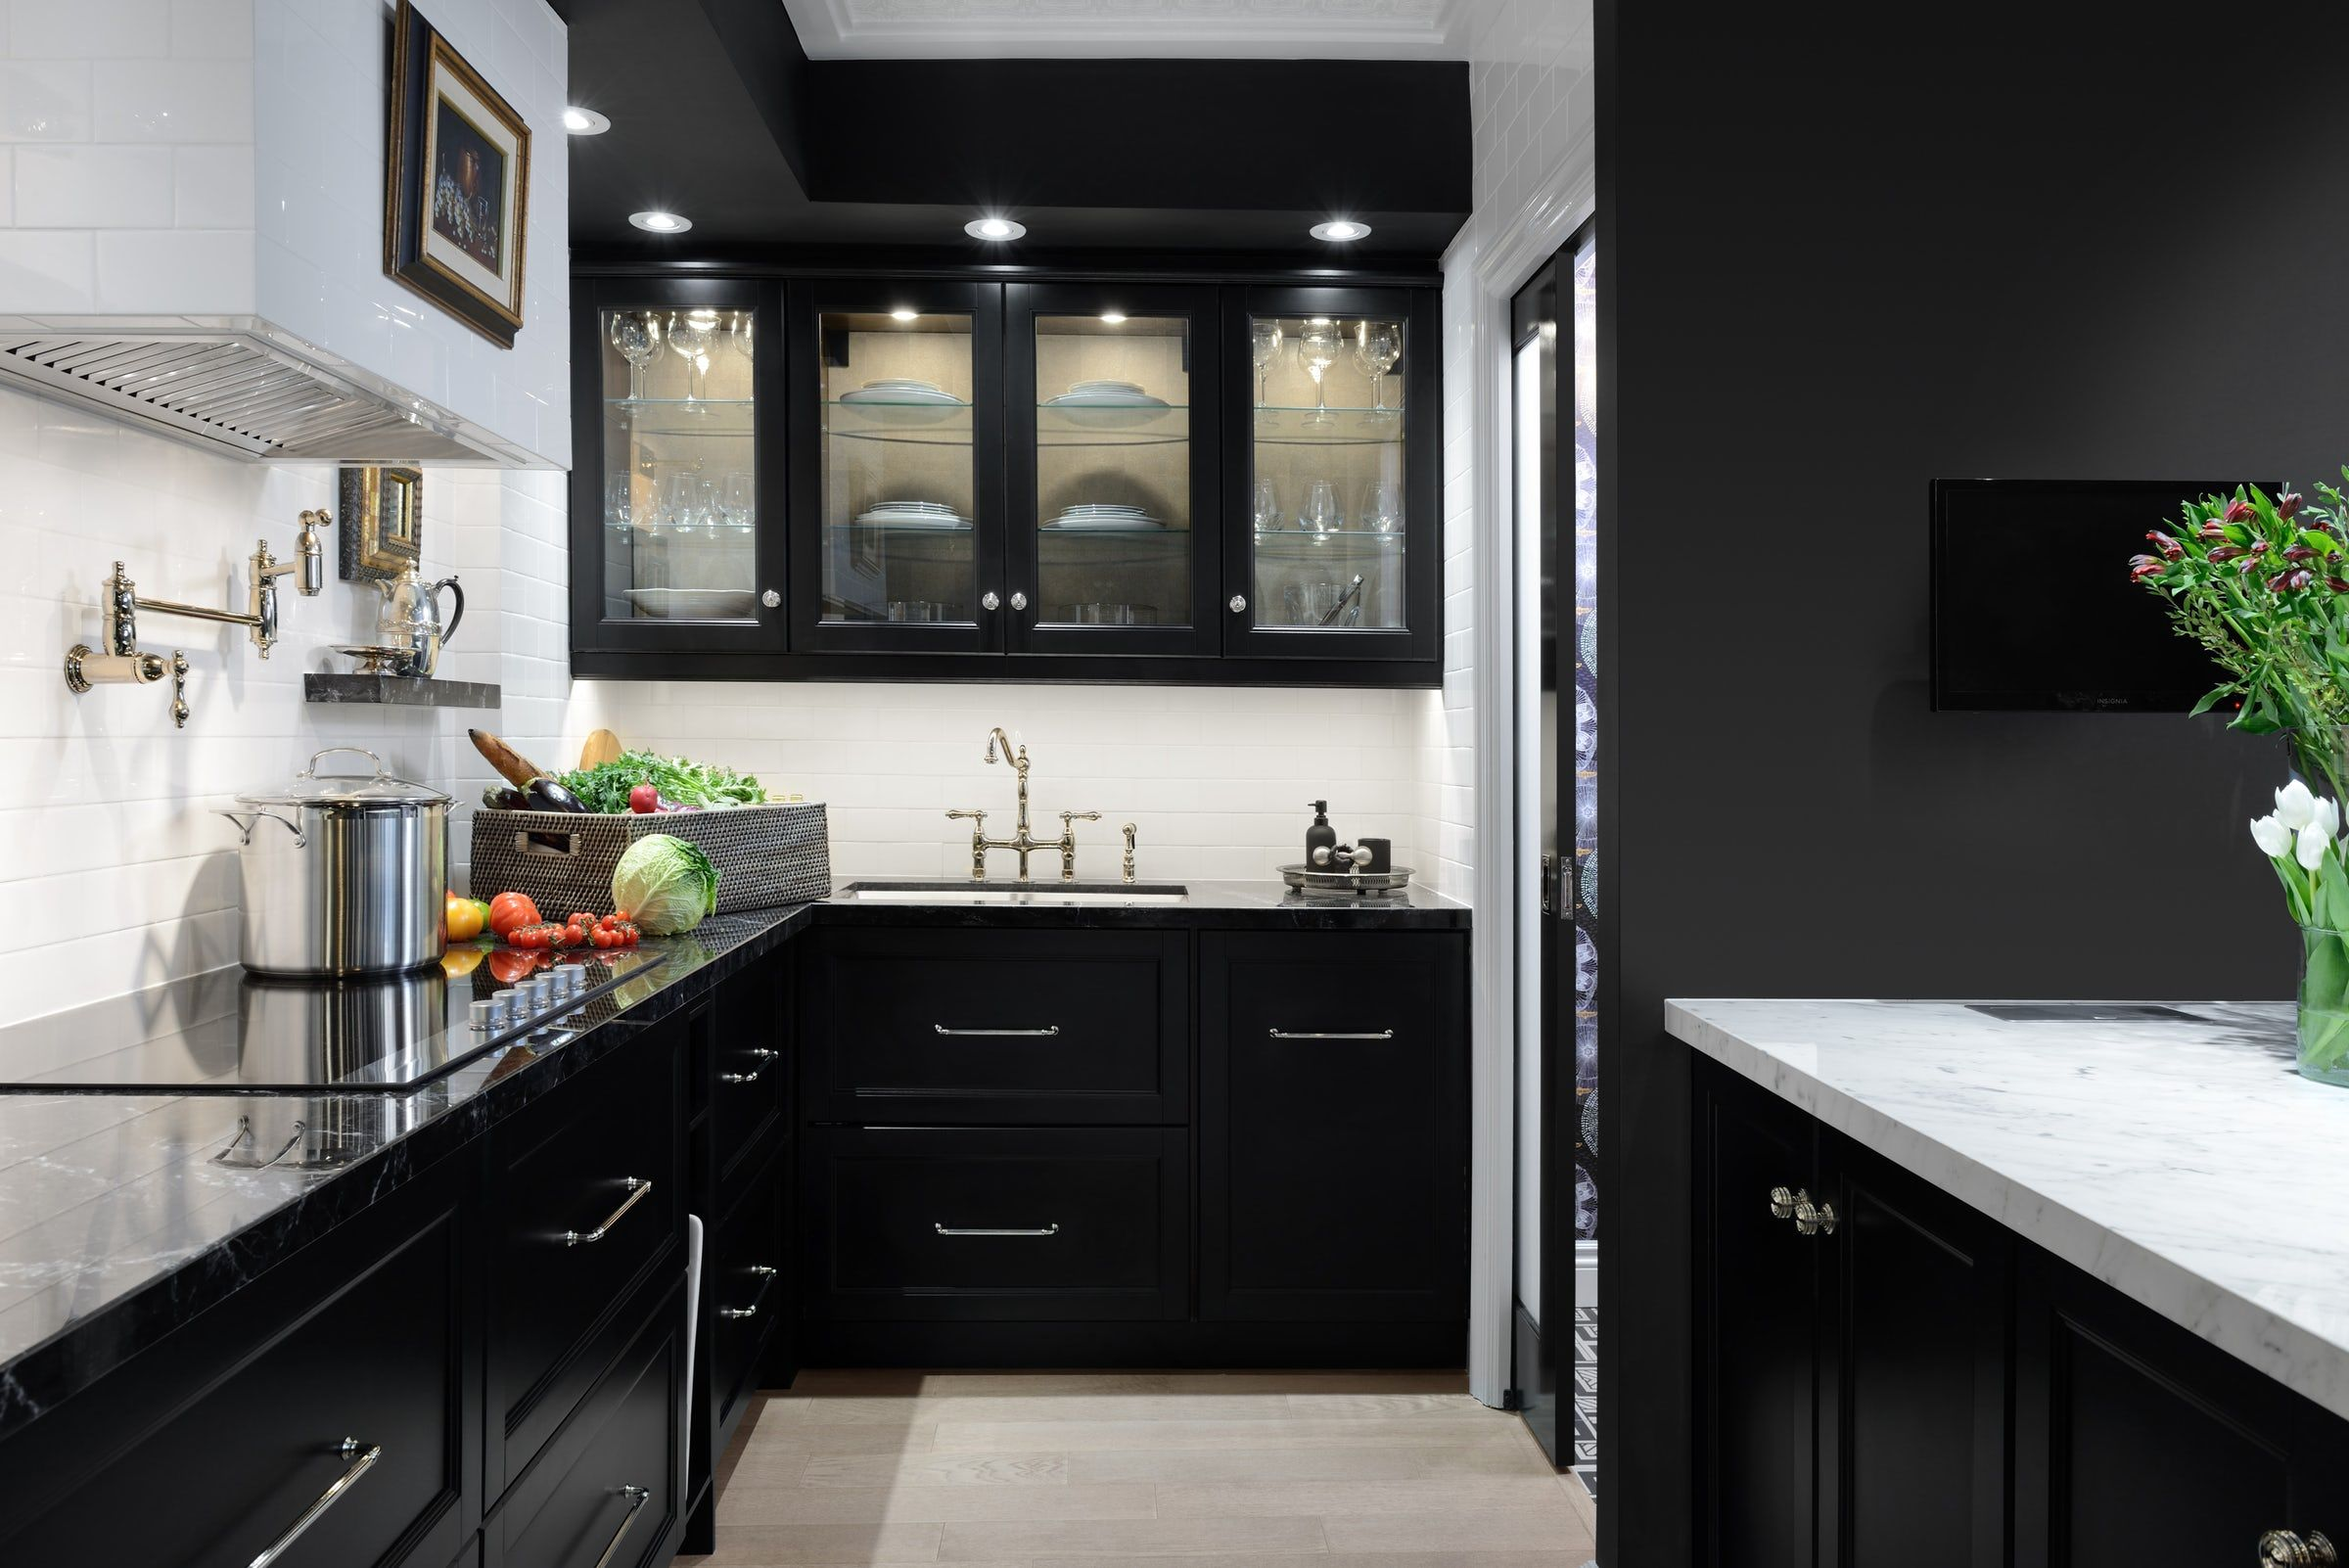 black kitchen cabinets modern – qm101.co